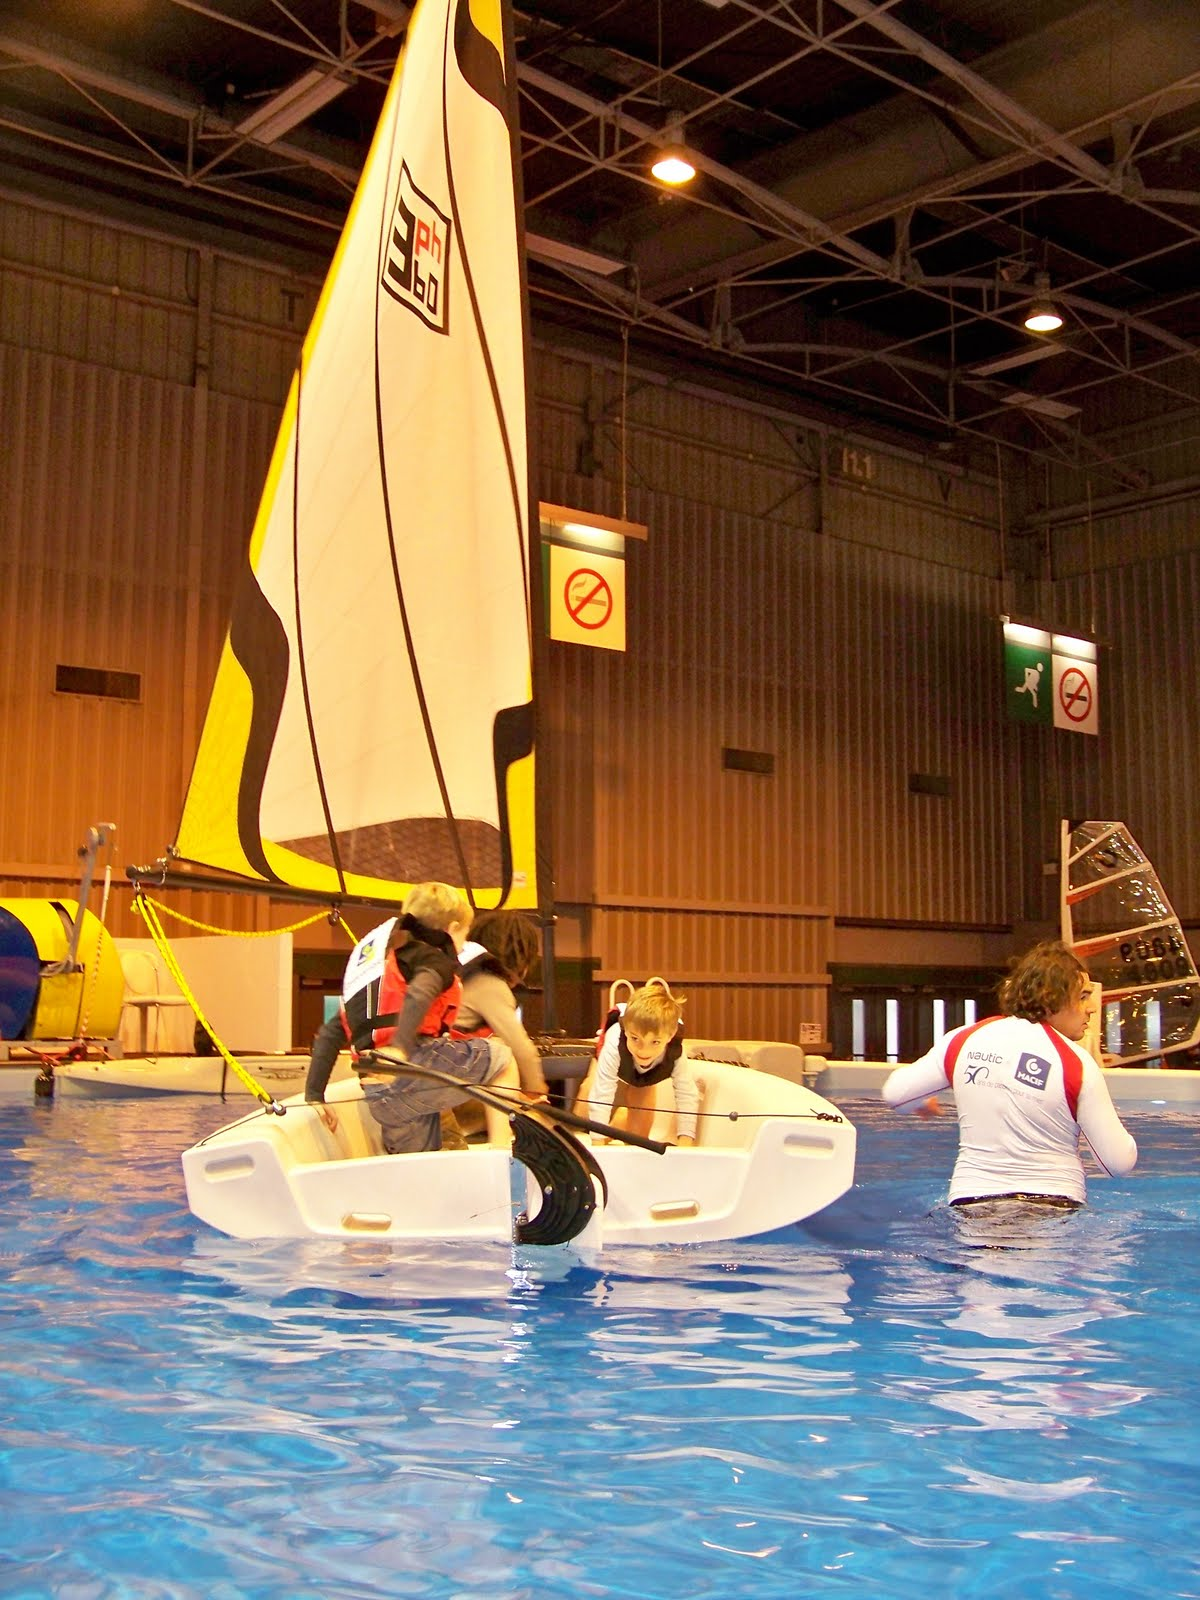 Phileas boats salon nautique de paris porte de for Salon porte de versailles hall 4